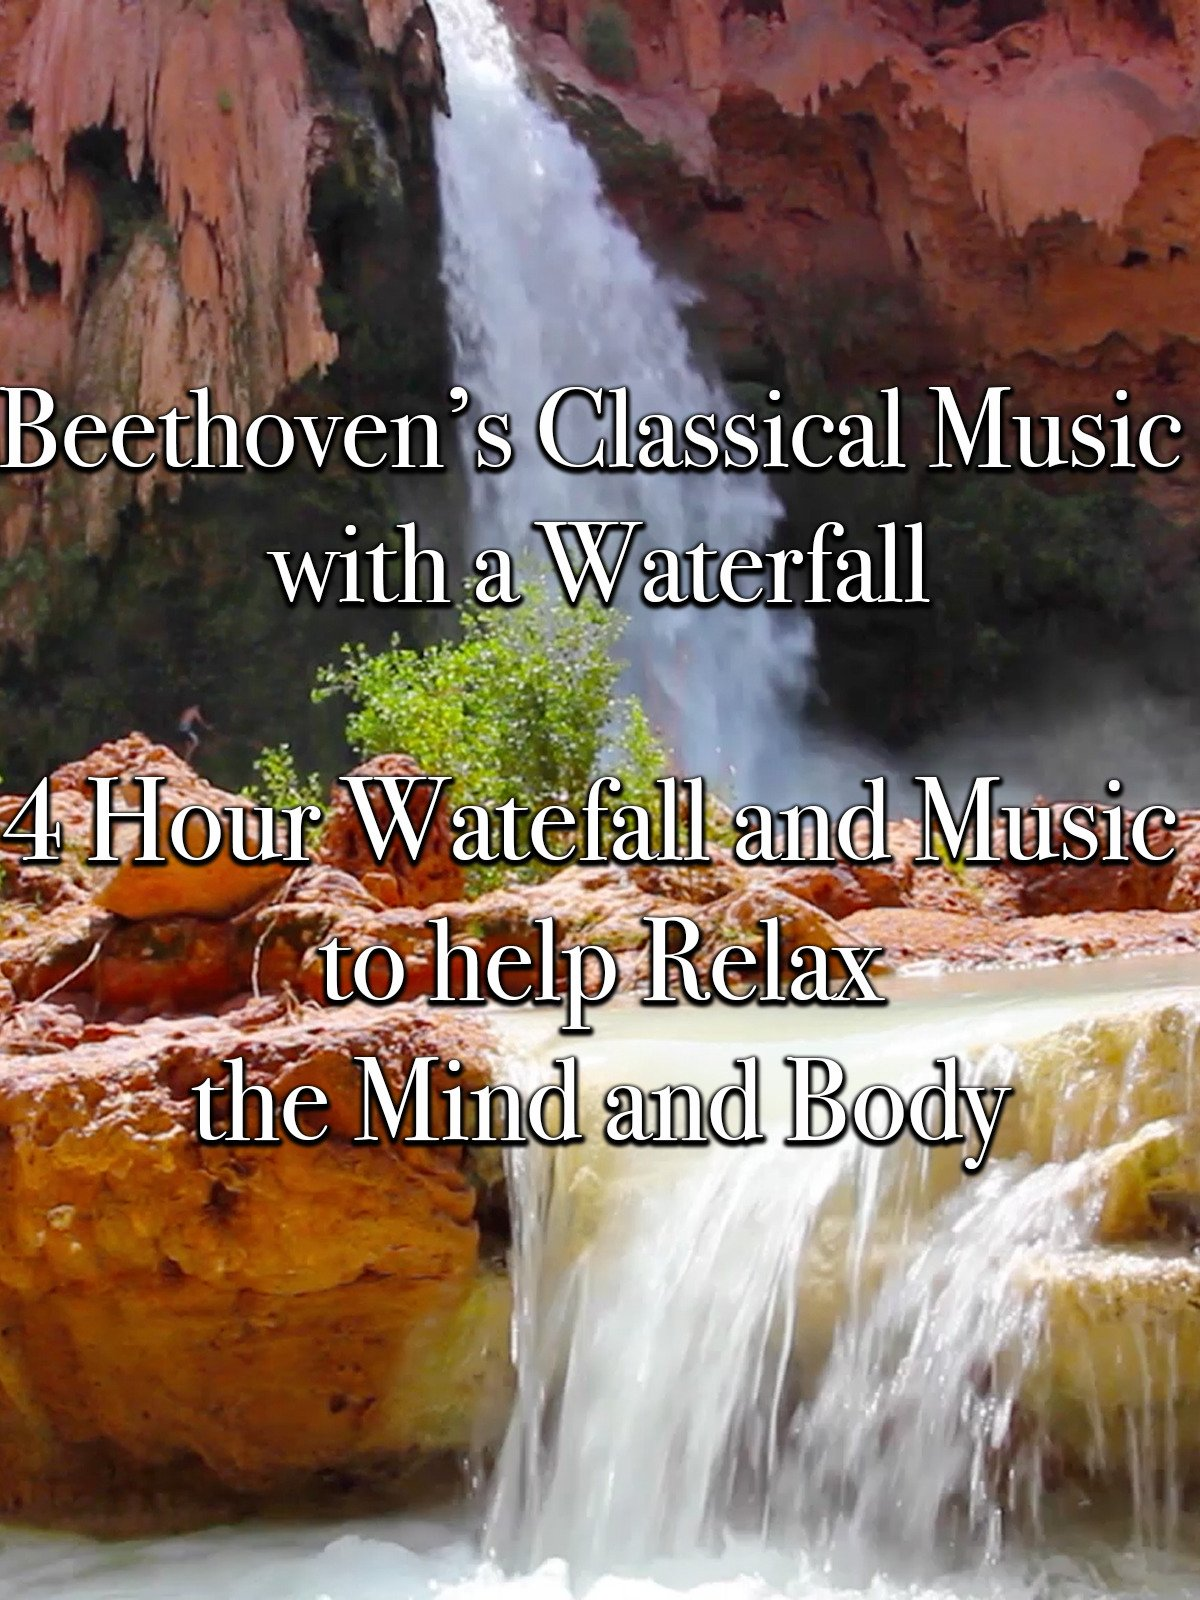 Beethoven's Classical Music with a Waterfall 4 Hour Waterfall and Music to help Relax the Mind and Body